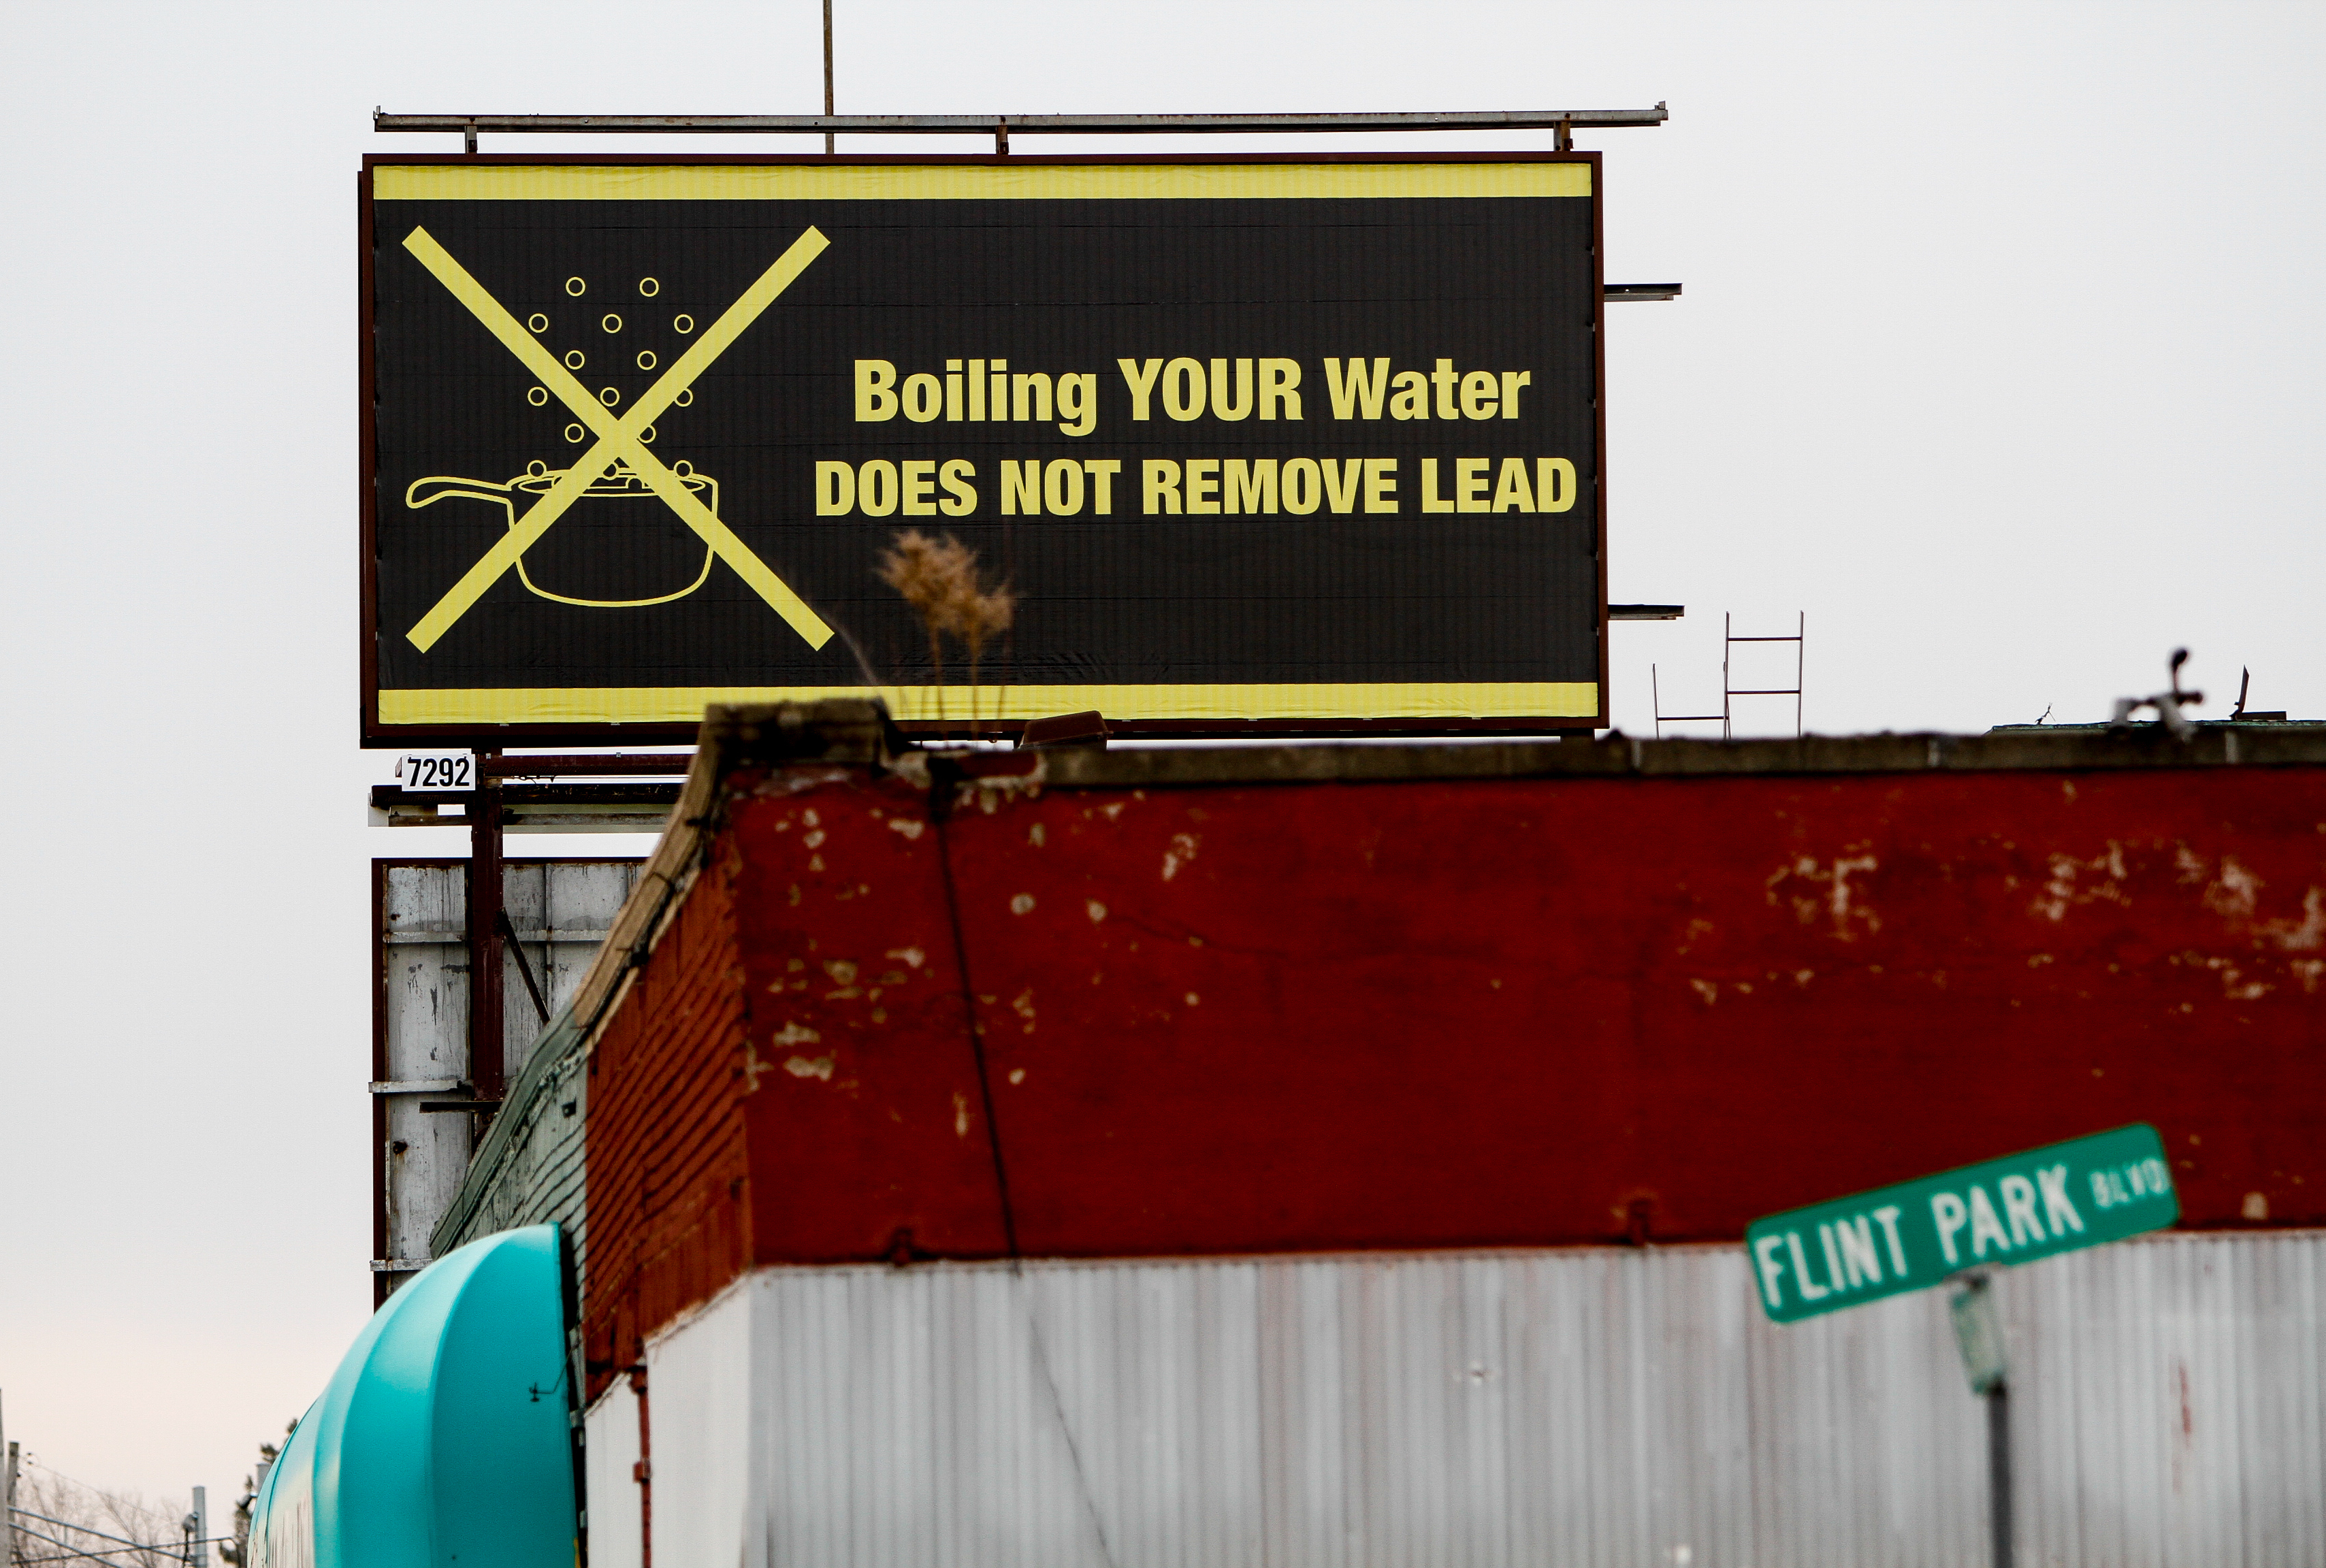 A sign tells Flint residents that boiling water doesn't remove lead on February 7, 2016 in Flint, Michigan. Months ago the city told citizens they could use tap water if they boiled it first, but now say it must be filtered to remove lead.